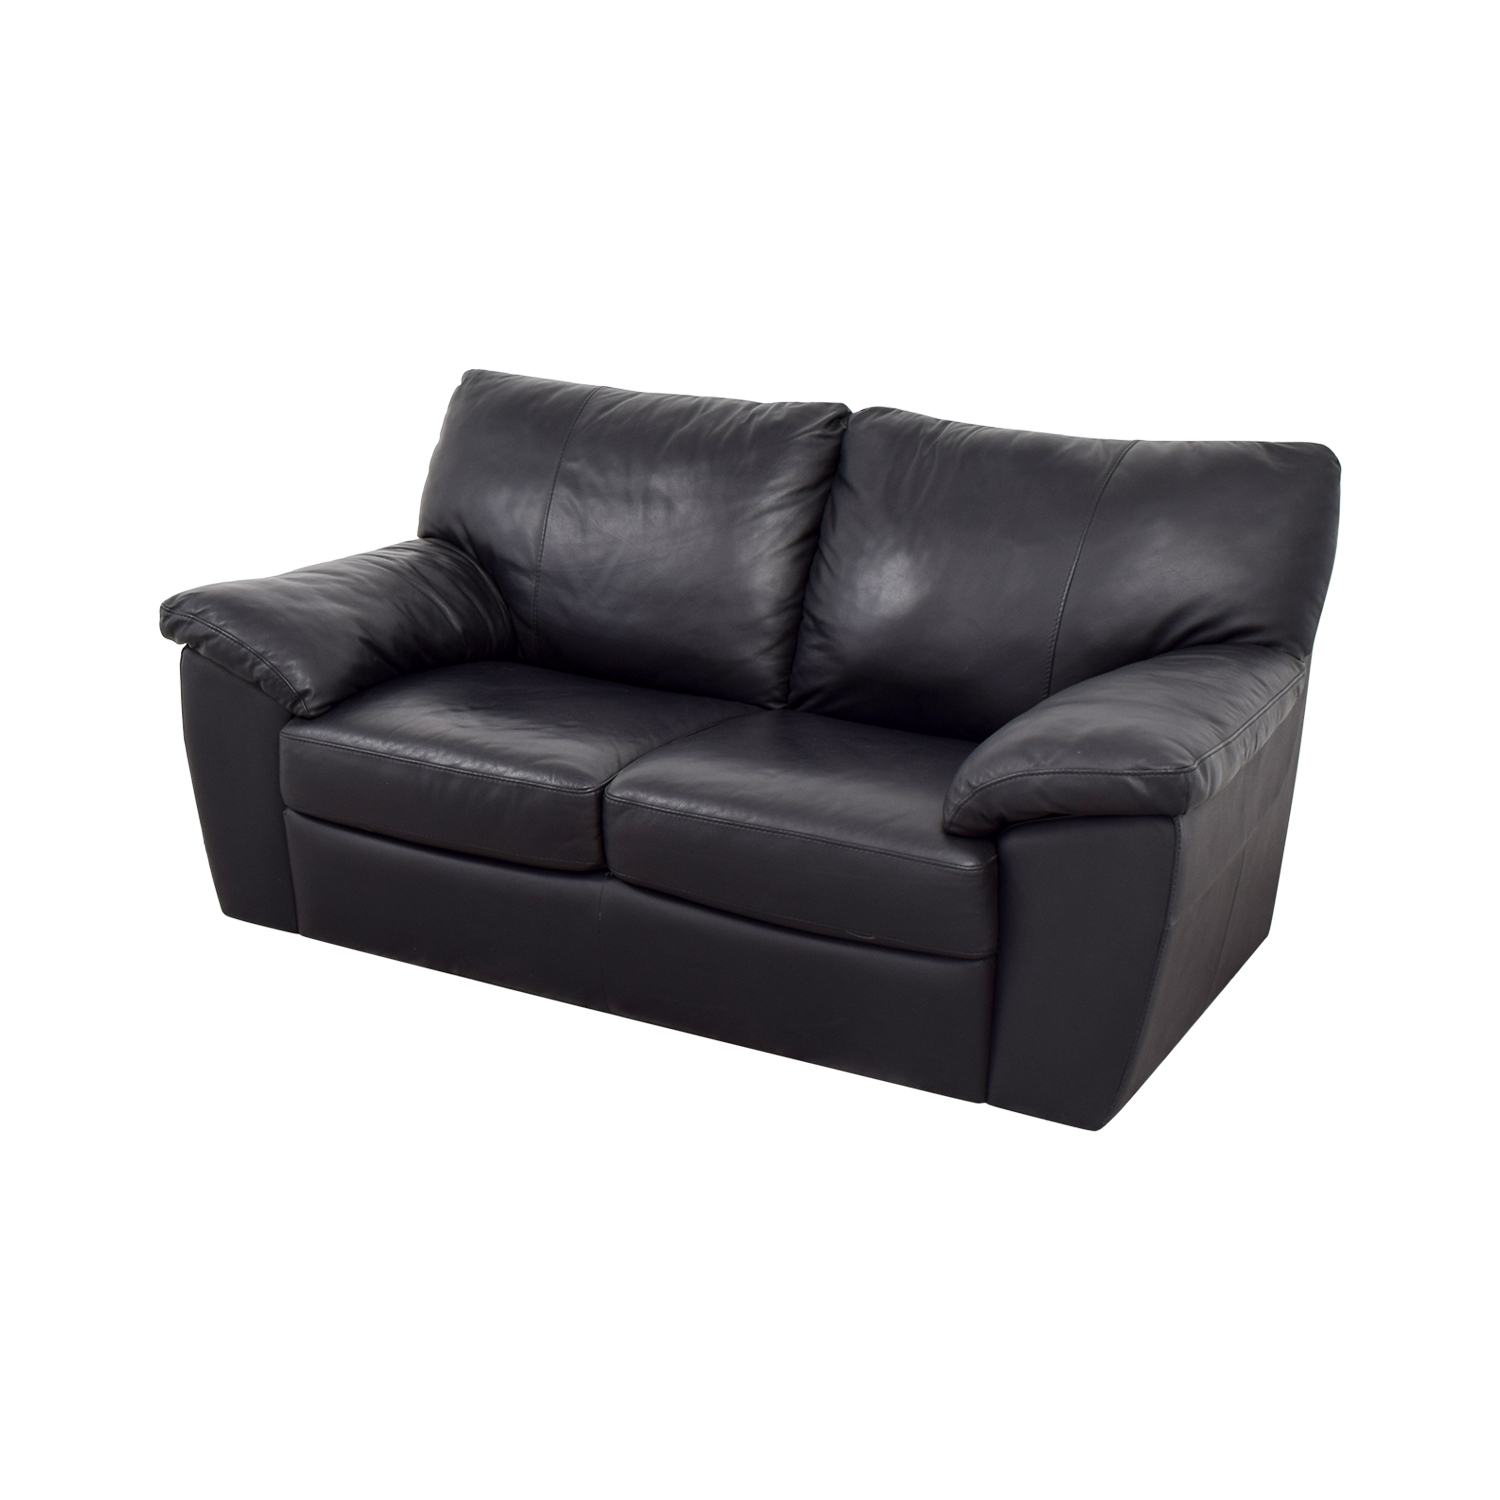 81% OFF - IKEA IKEA Black Leather Two-Cushion Couch / Sofas